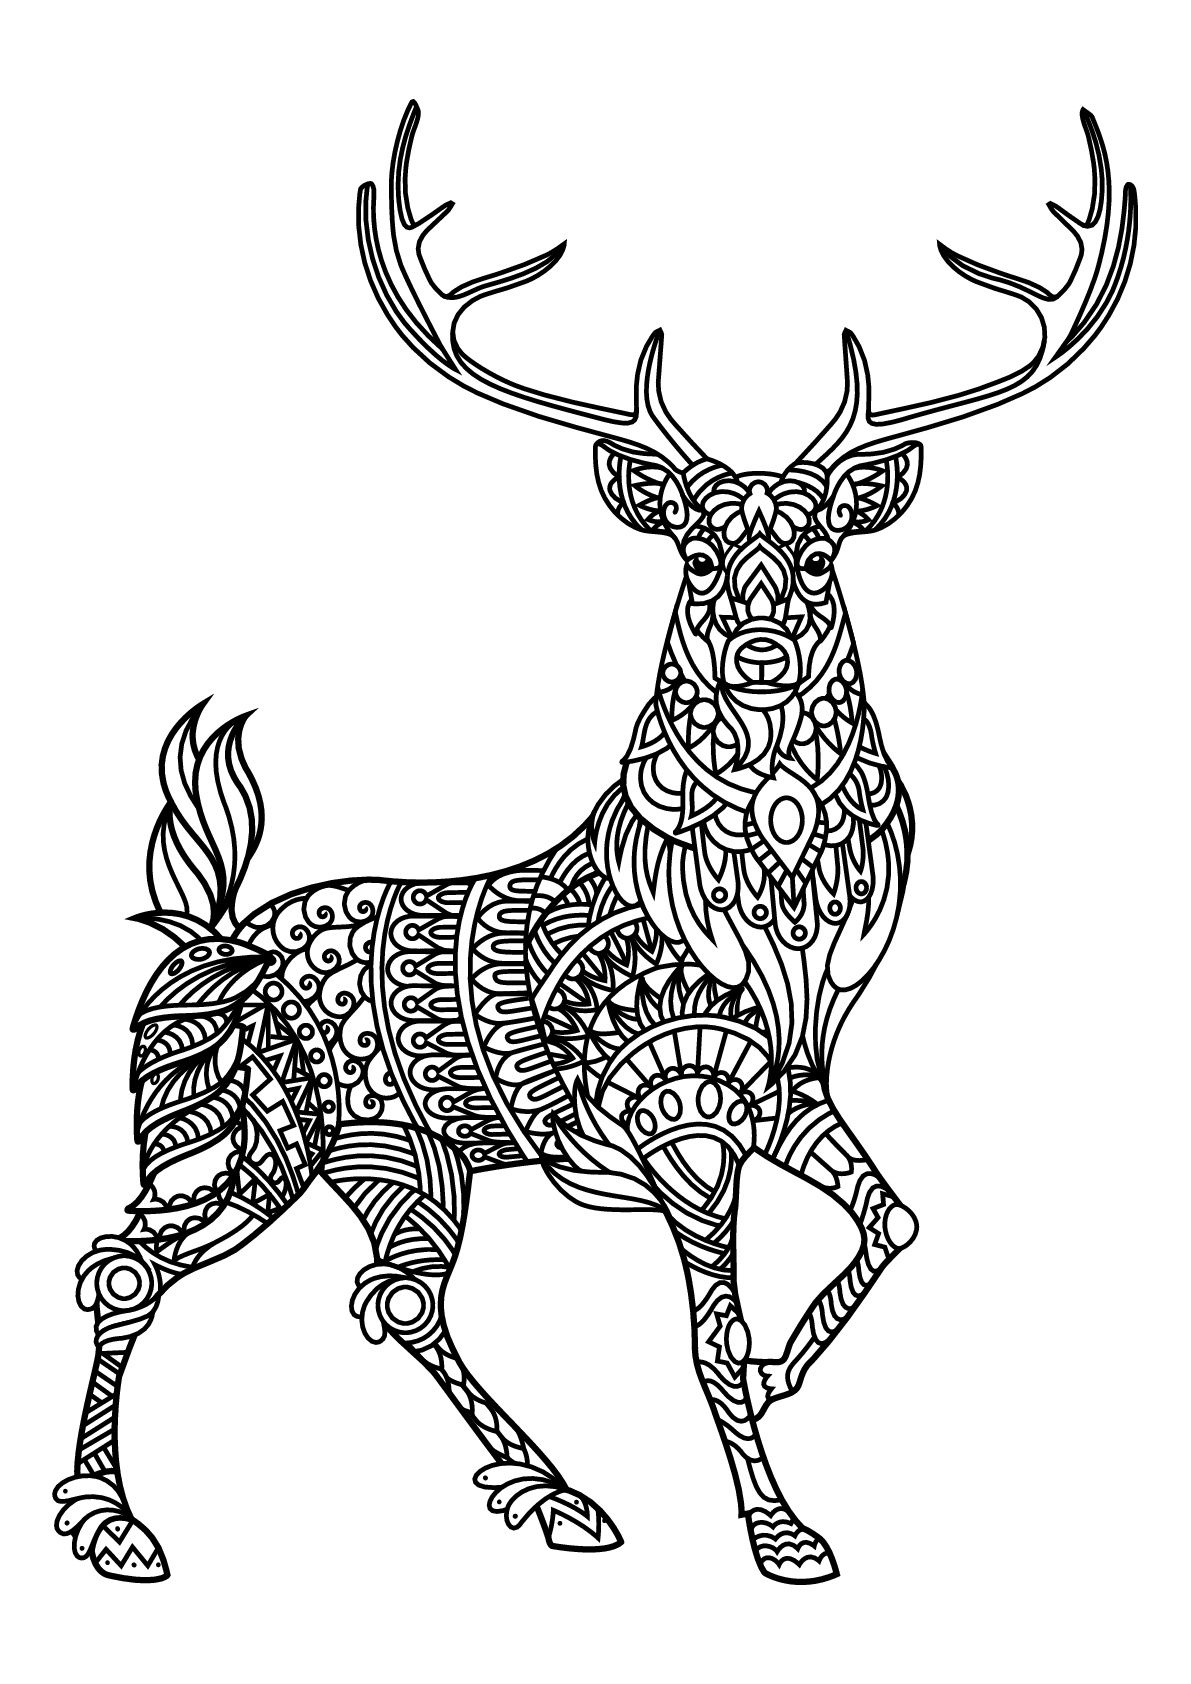 - Reindeer Coloring Pages Deer Coloring Pages, Animal Coloring